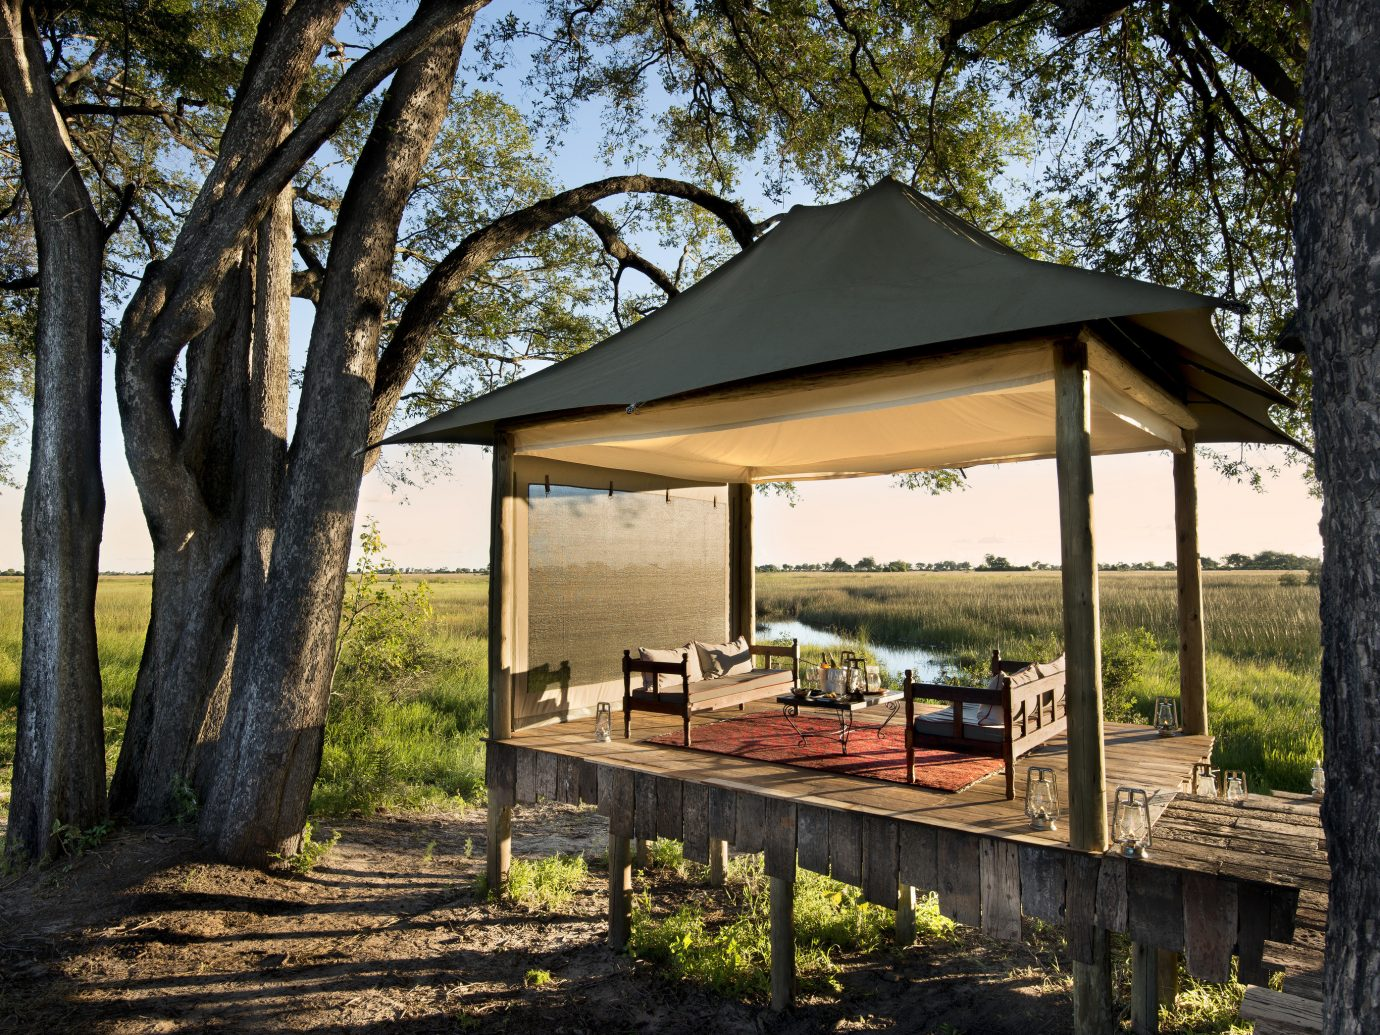 Trip Ideas tree outdoor grass building house park home Architecture estate backyard wooden woodland cottage outdoor structure wood pavilion area shade